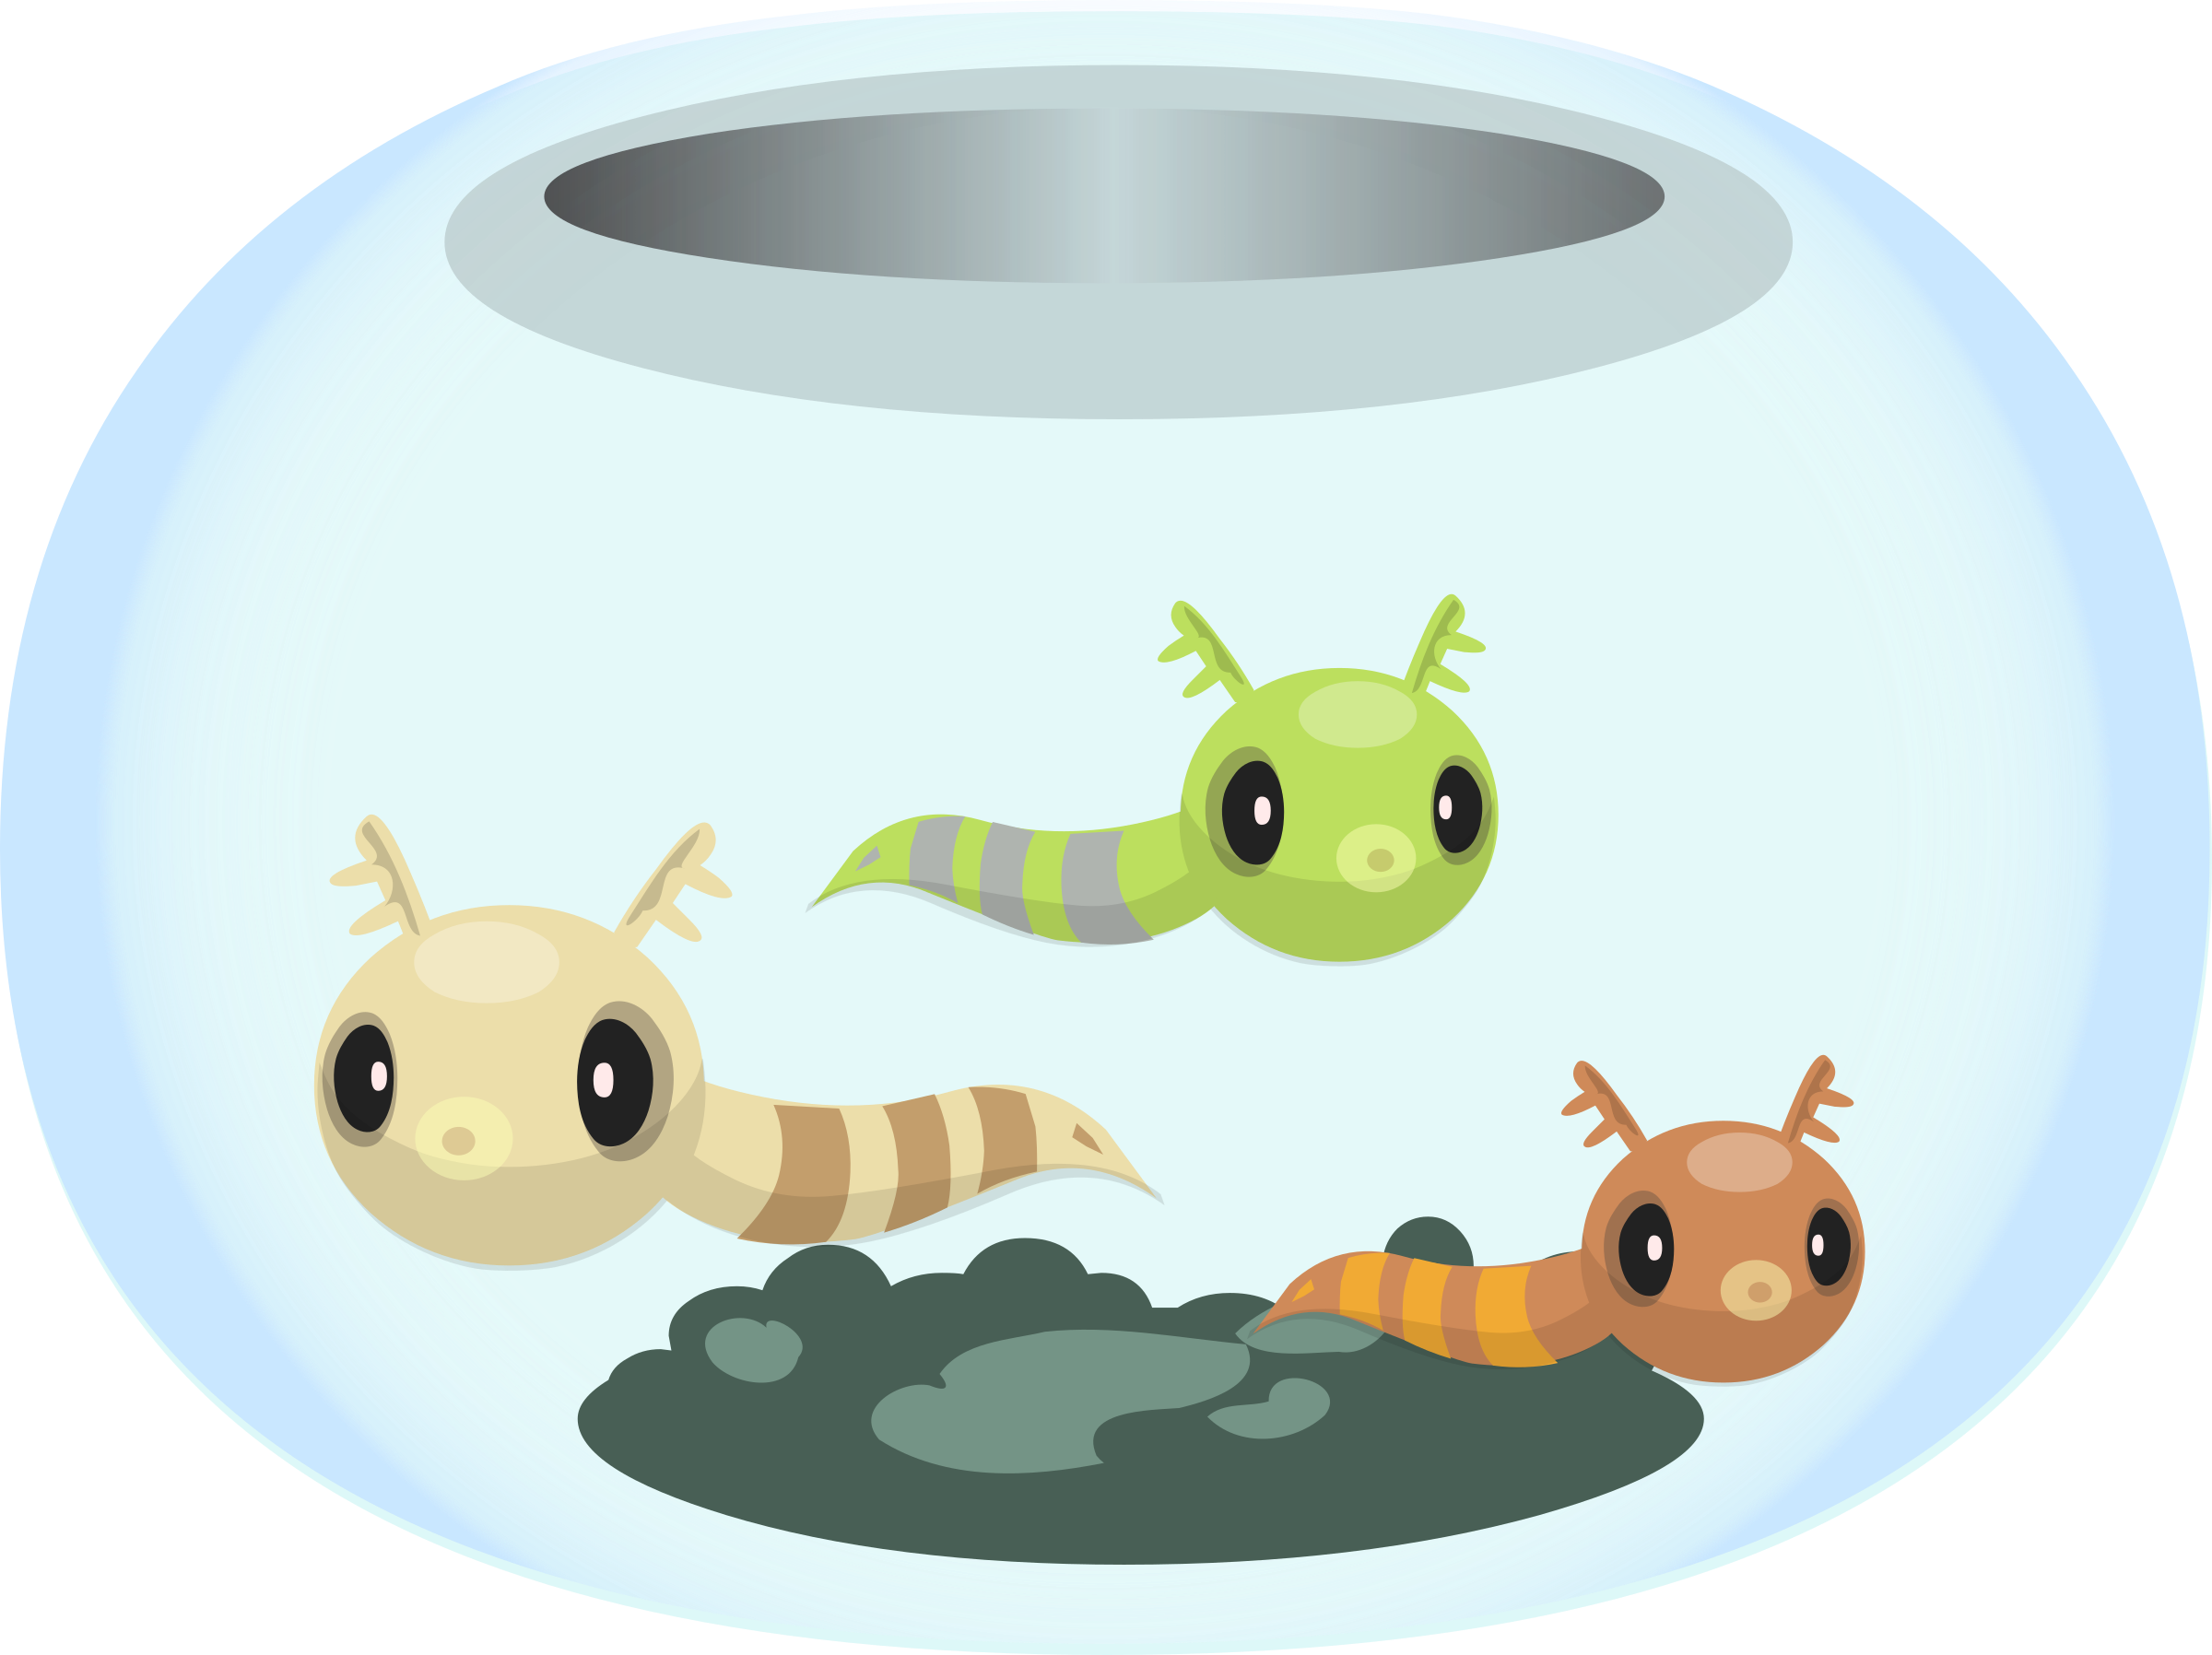 Firebog from glitch remix. Fishbowl clipart home